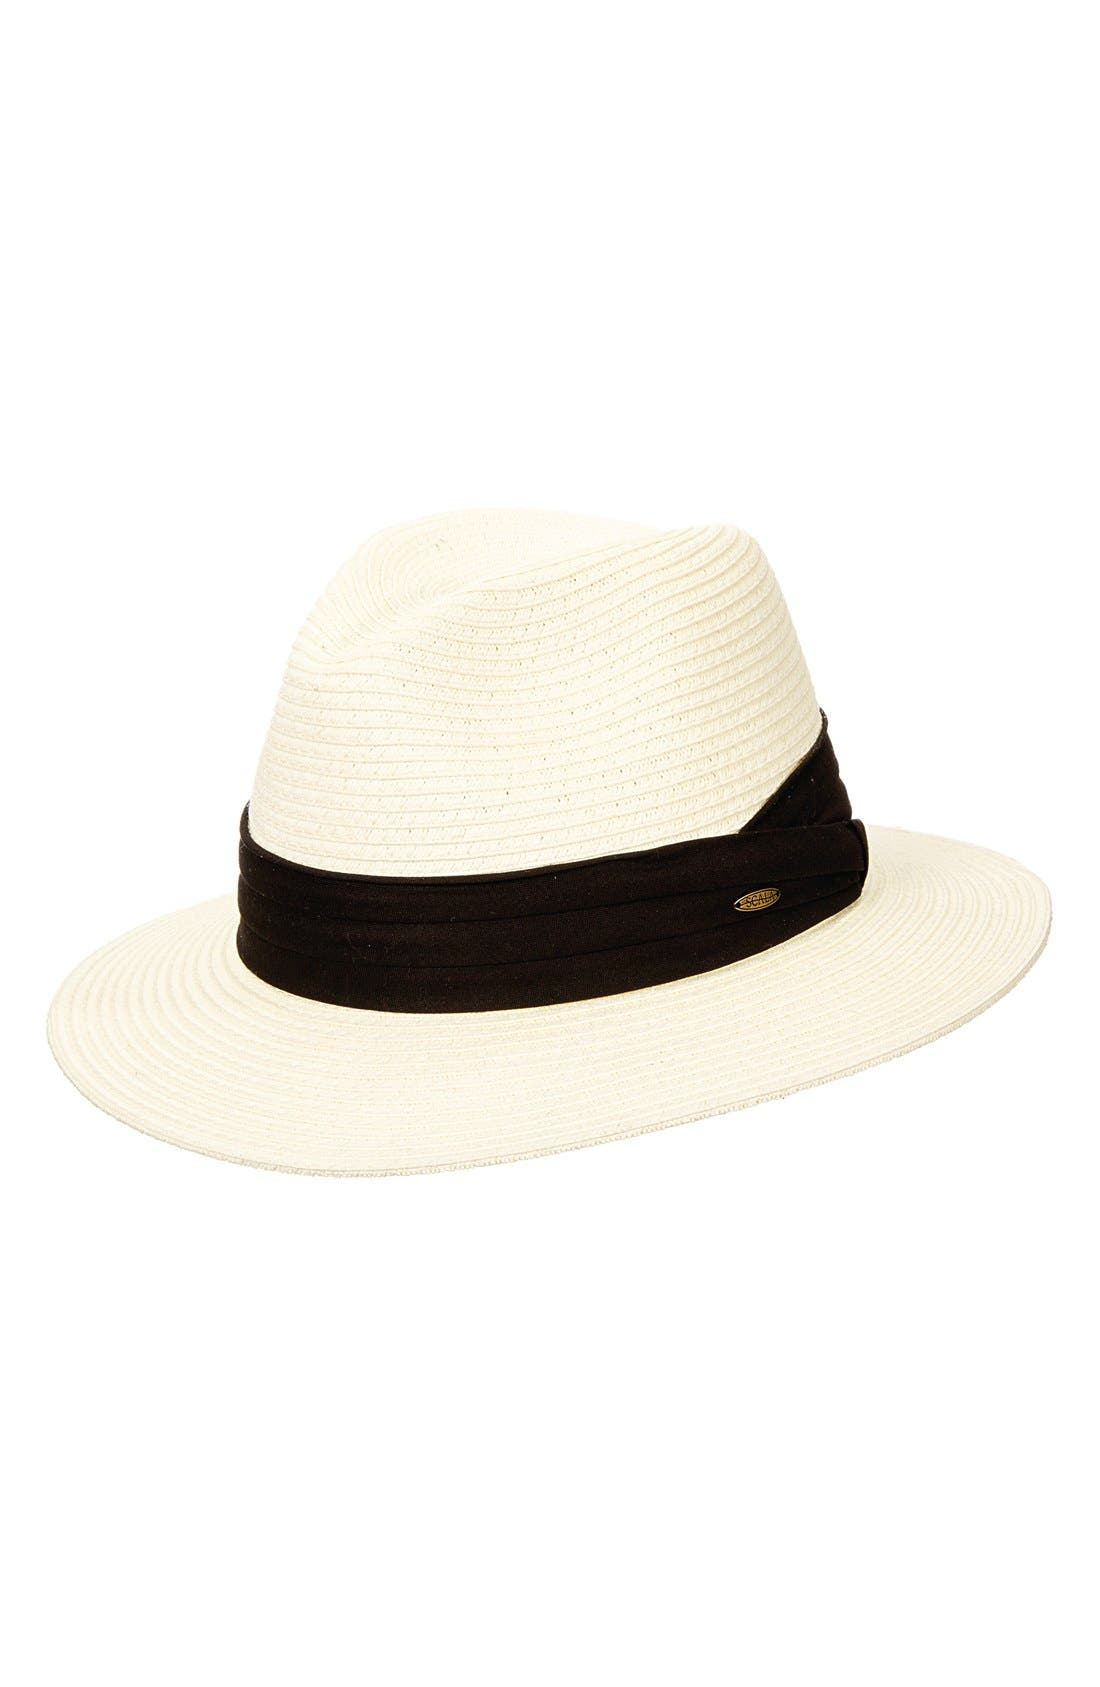 Safari Hat,                             Main thumbnail 1, color,                             IVORY